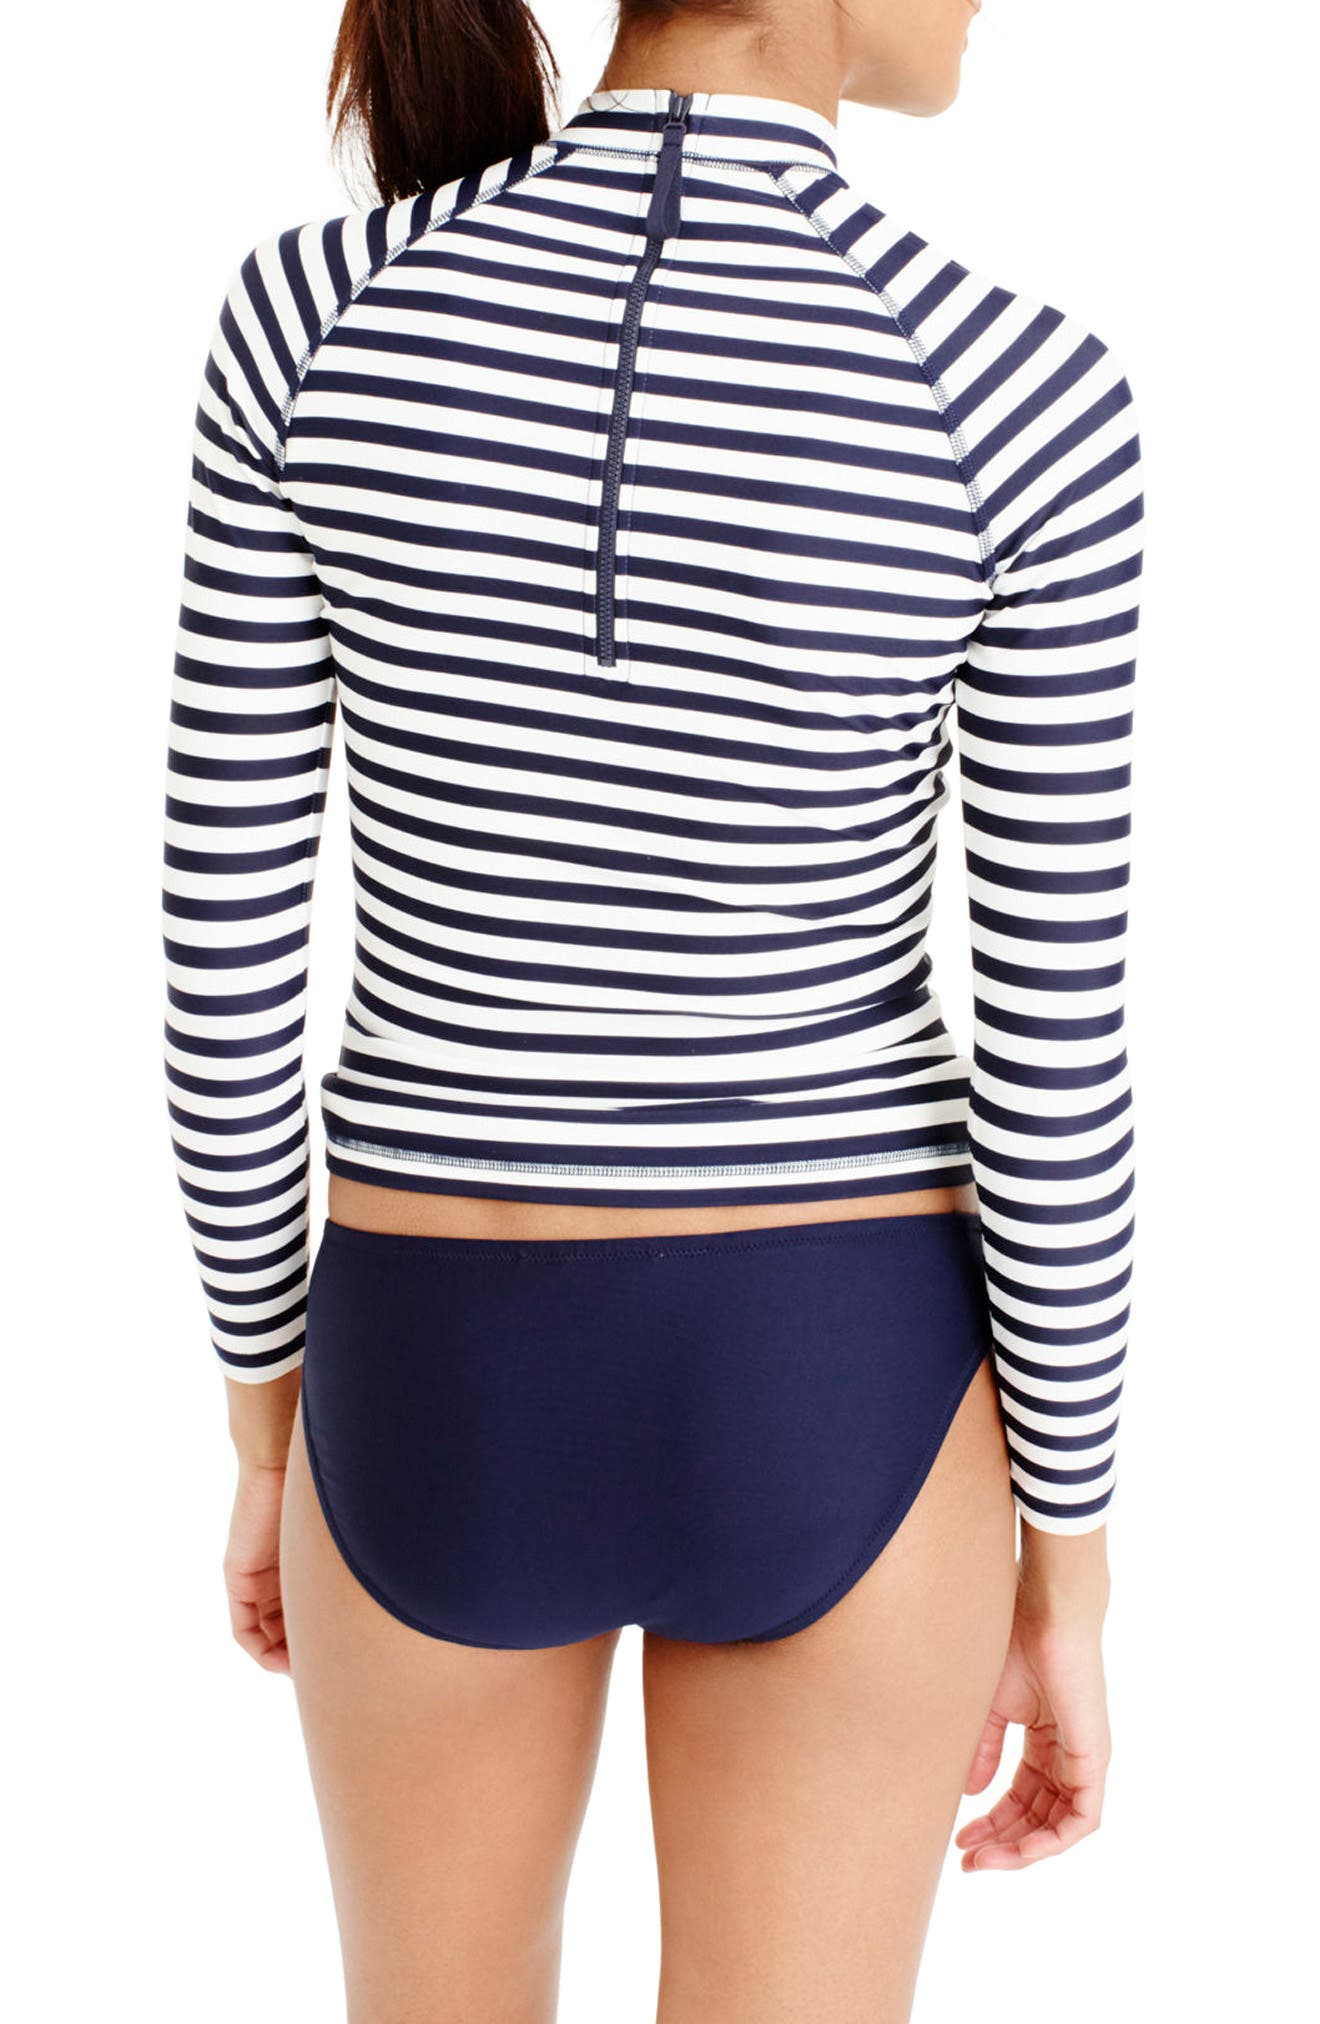 J.Crew Stripe Rashguard,                             Alternate thumbnail 2, color,                             Navy Ivory